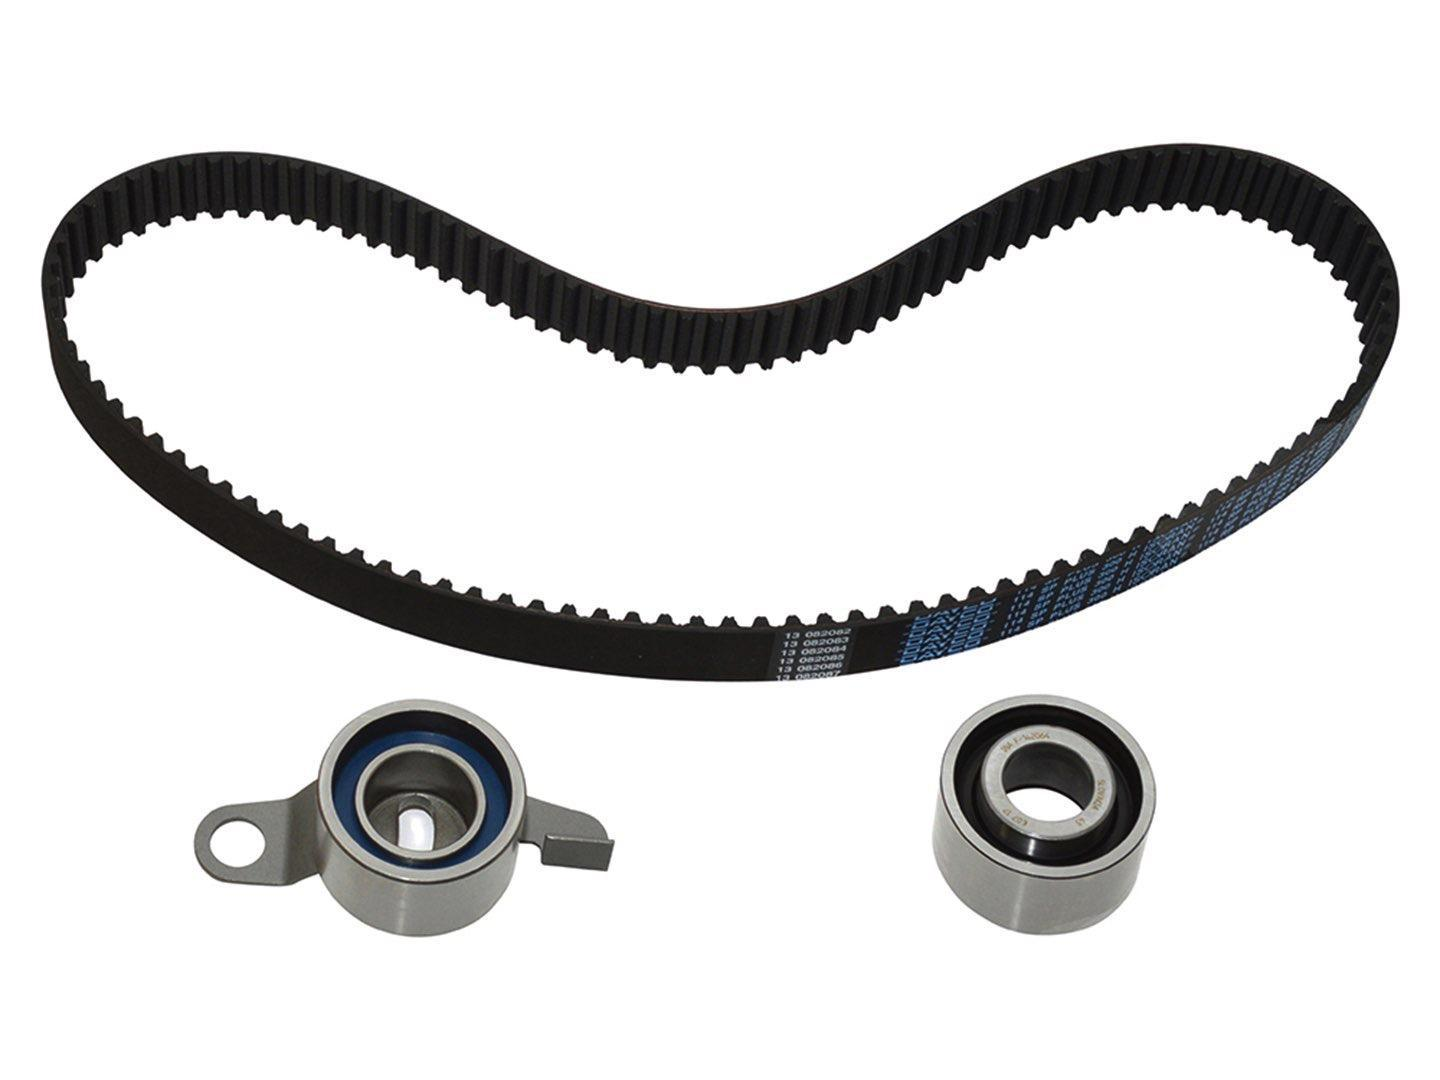 Safari Engineering Land Rover Specialist Hampshire Eversley - Land Rover Timing Belt Kit - Freelander 1 2000cc - Britpaart DA1262G